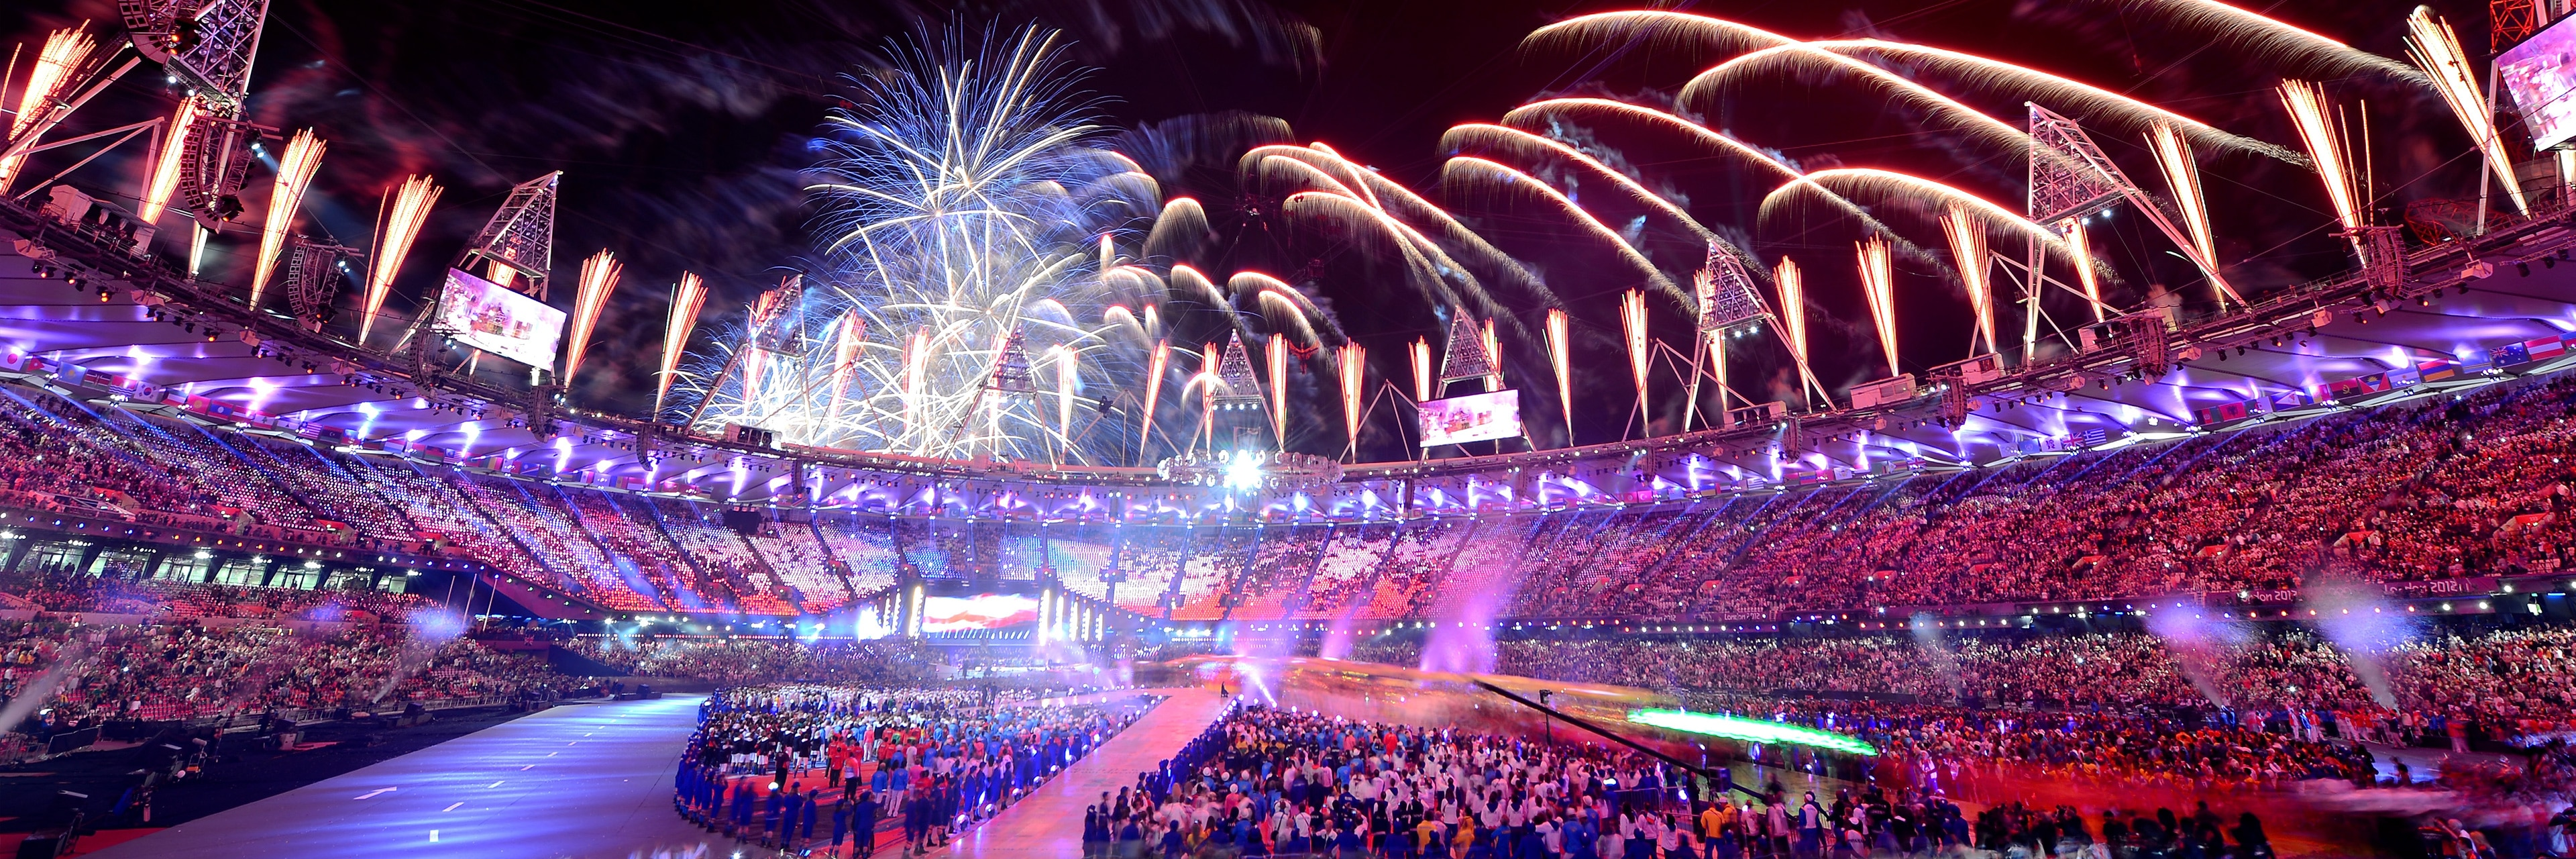 London 2012 Summer Olympics - results & video highlights